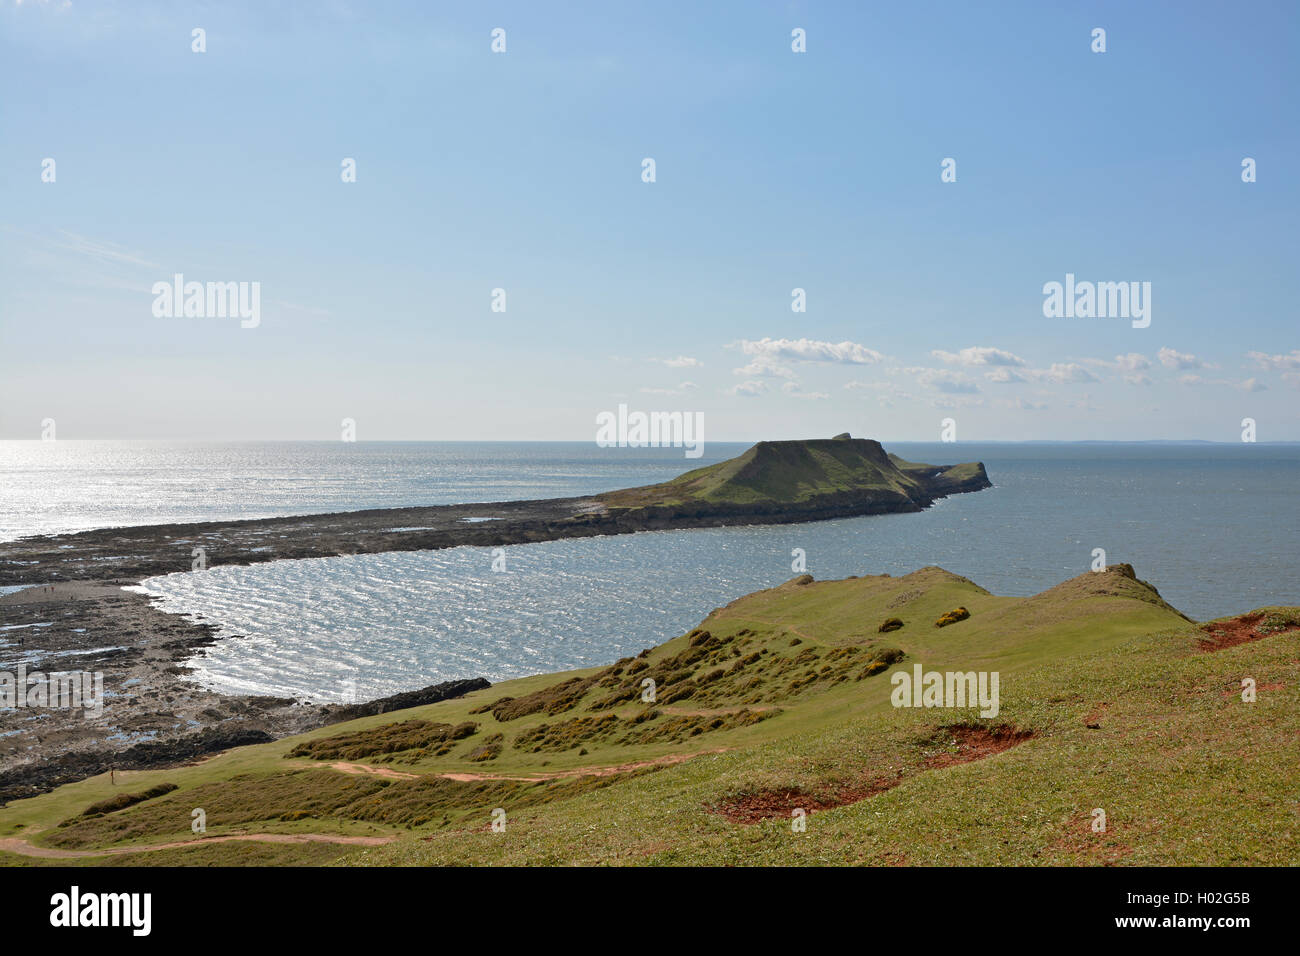 View to Worms Head or Penrhyn-gwyr on the Gower Peninsular at Rhossili in Wales, United Kingdom. With people walking - Stock Image